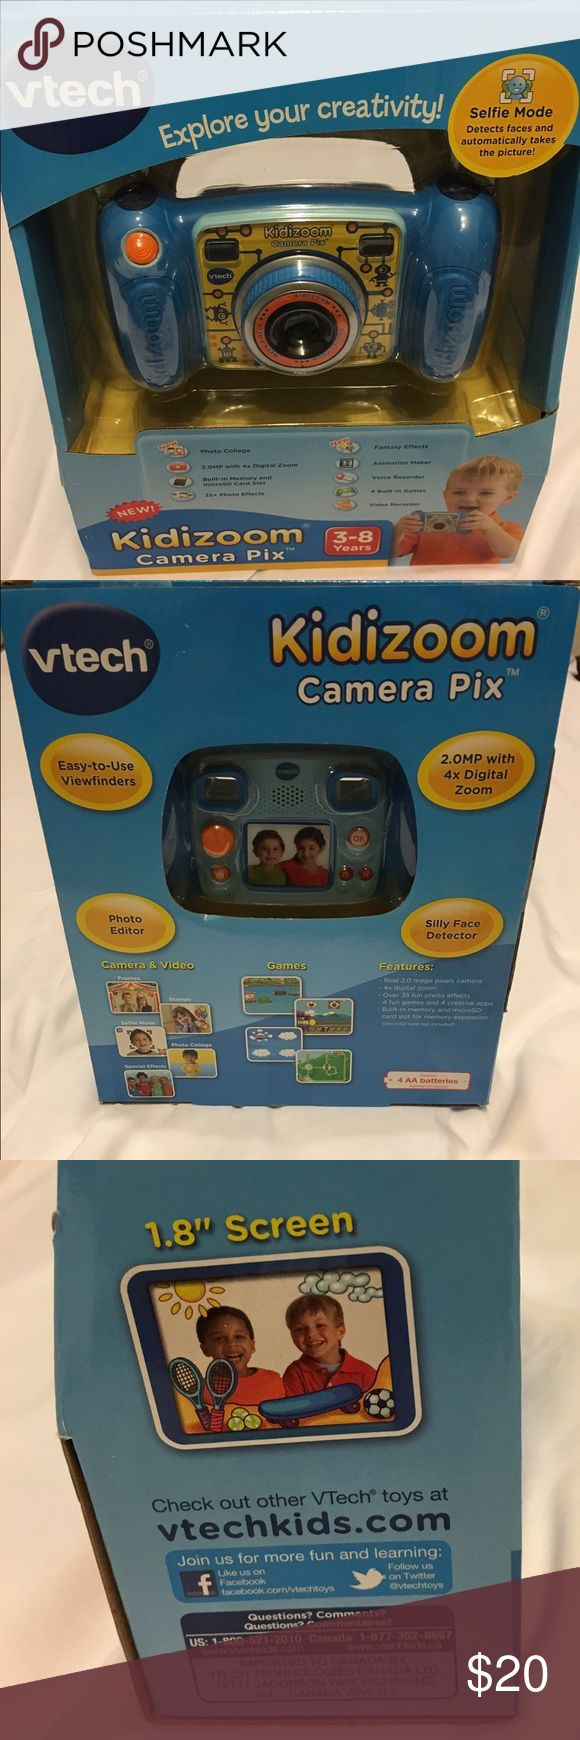 Vtech Kidizoom Camera Vtech Kidizoom Camera 3-8 years Never opened- brand new!  Photo collage, 2.0 MP with 4x Digital Zoom, built in memory and microSD card slot, 35+ photo effects, fantasy effects , animation maker, voice recorder, 4 built in games, video recorder!  Even has a selfie mode! vtech Accessories